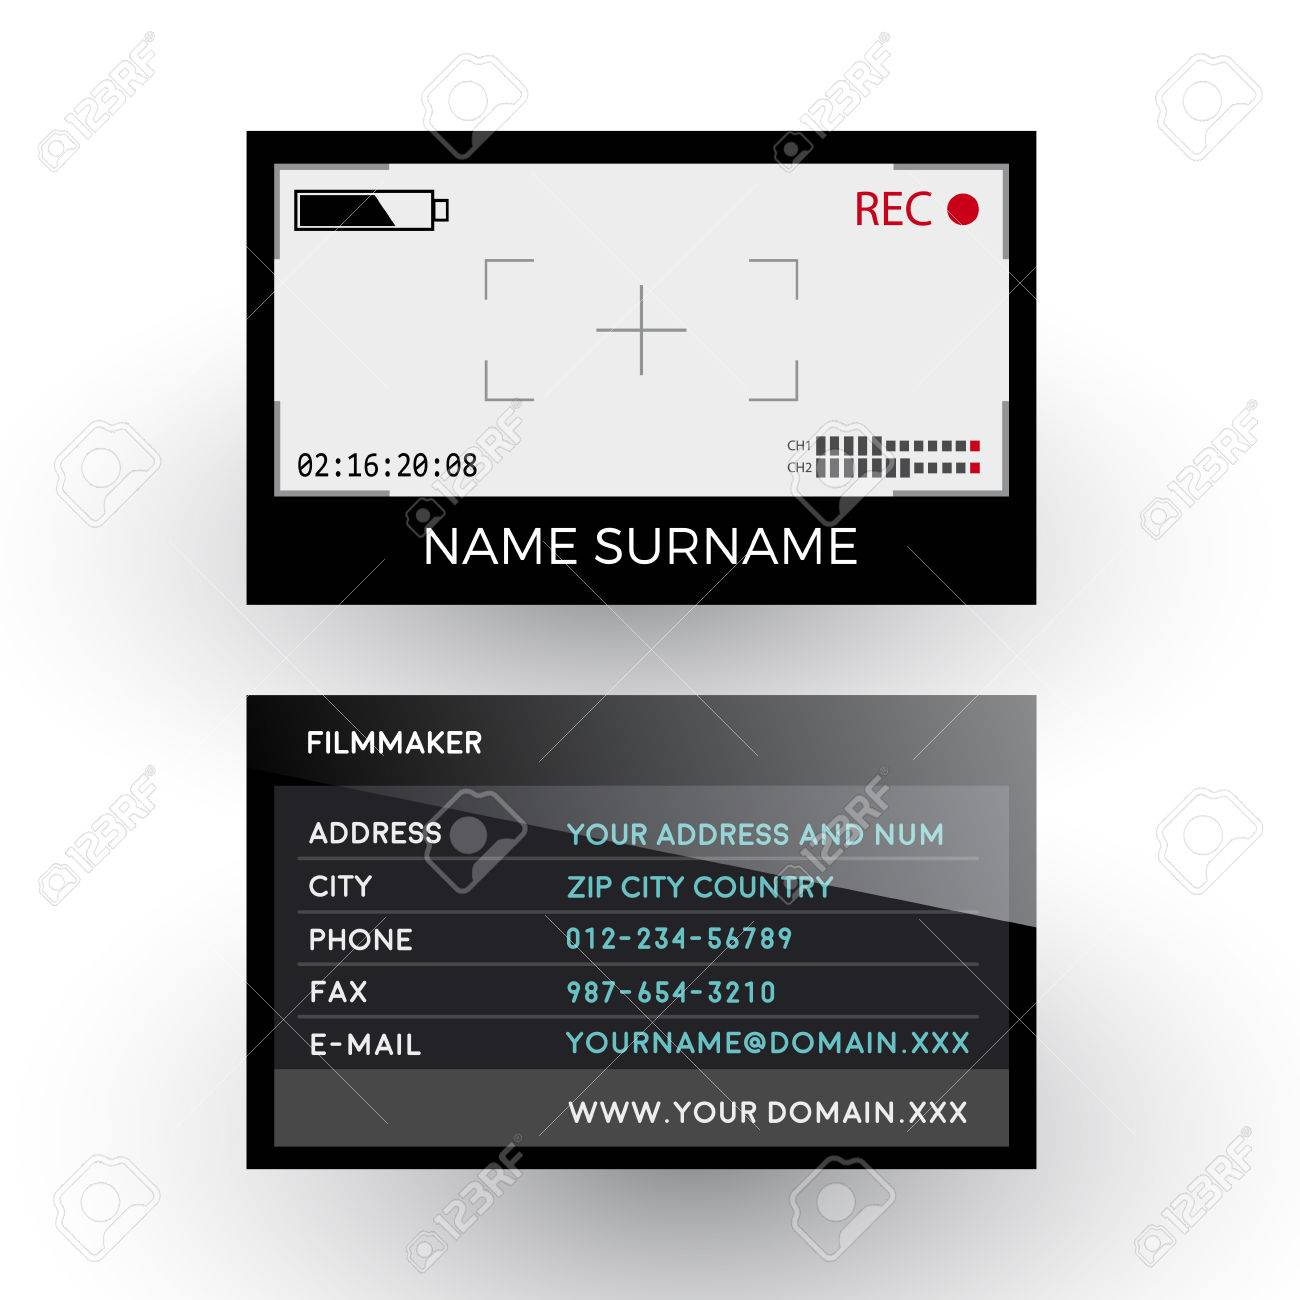 Filmmaker Business Cards Choice Image - Free Business Cards